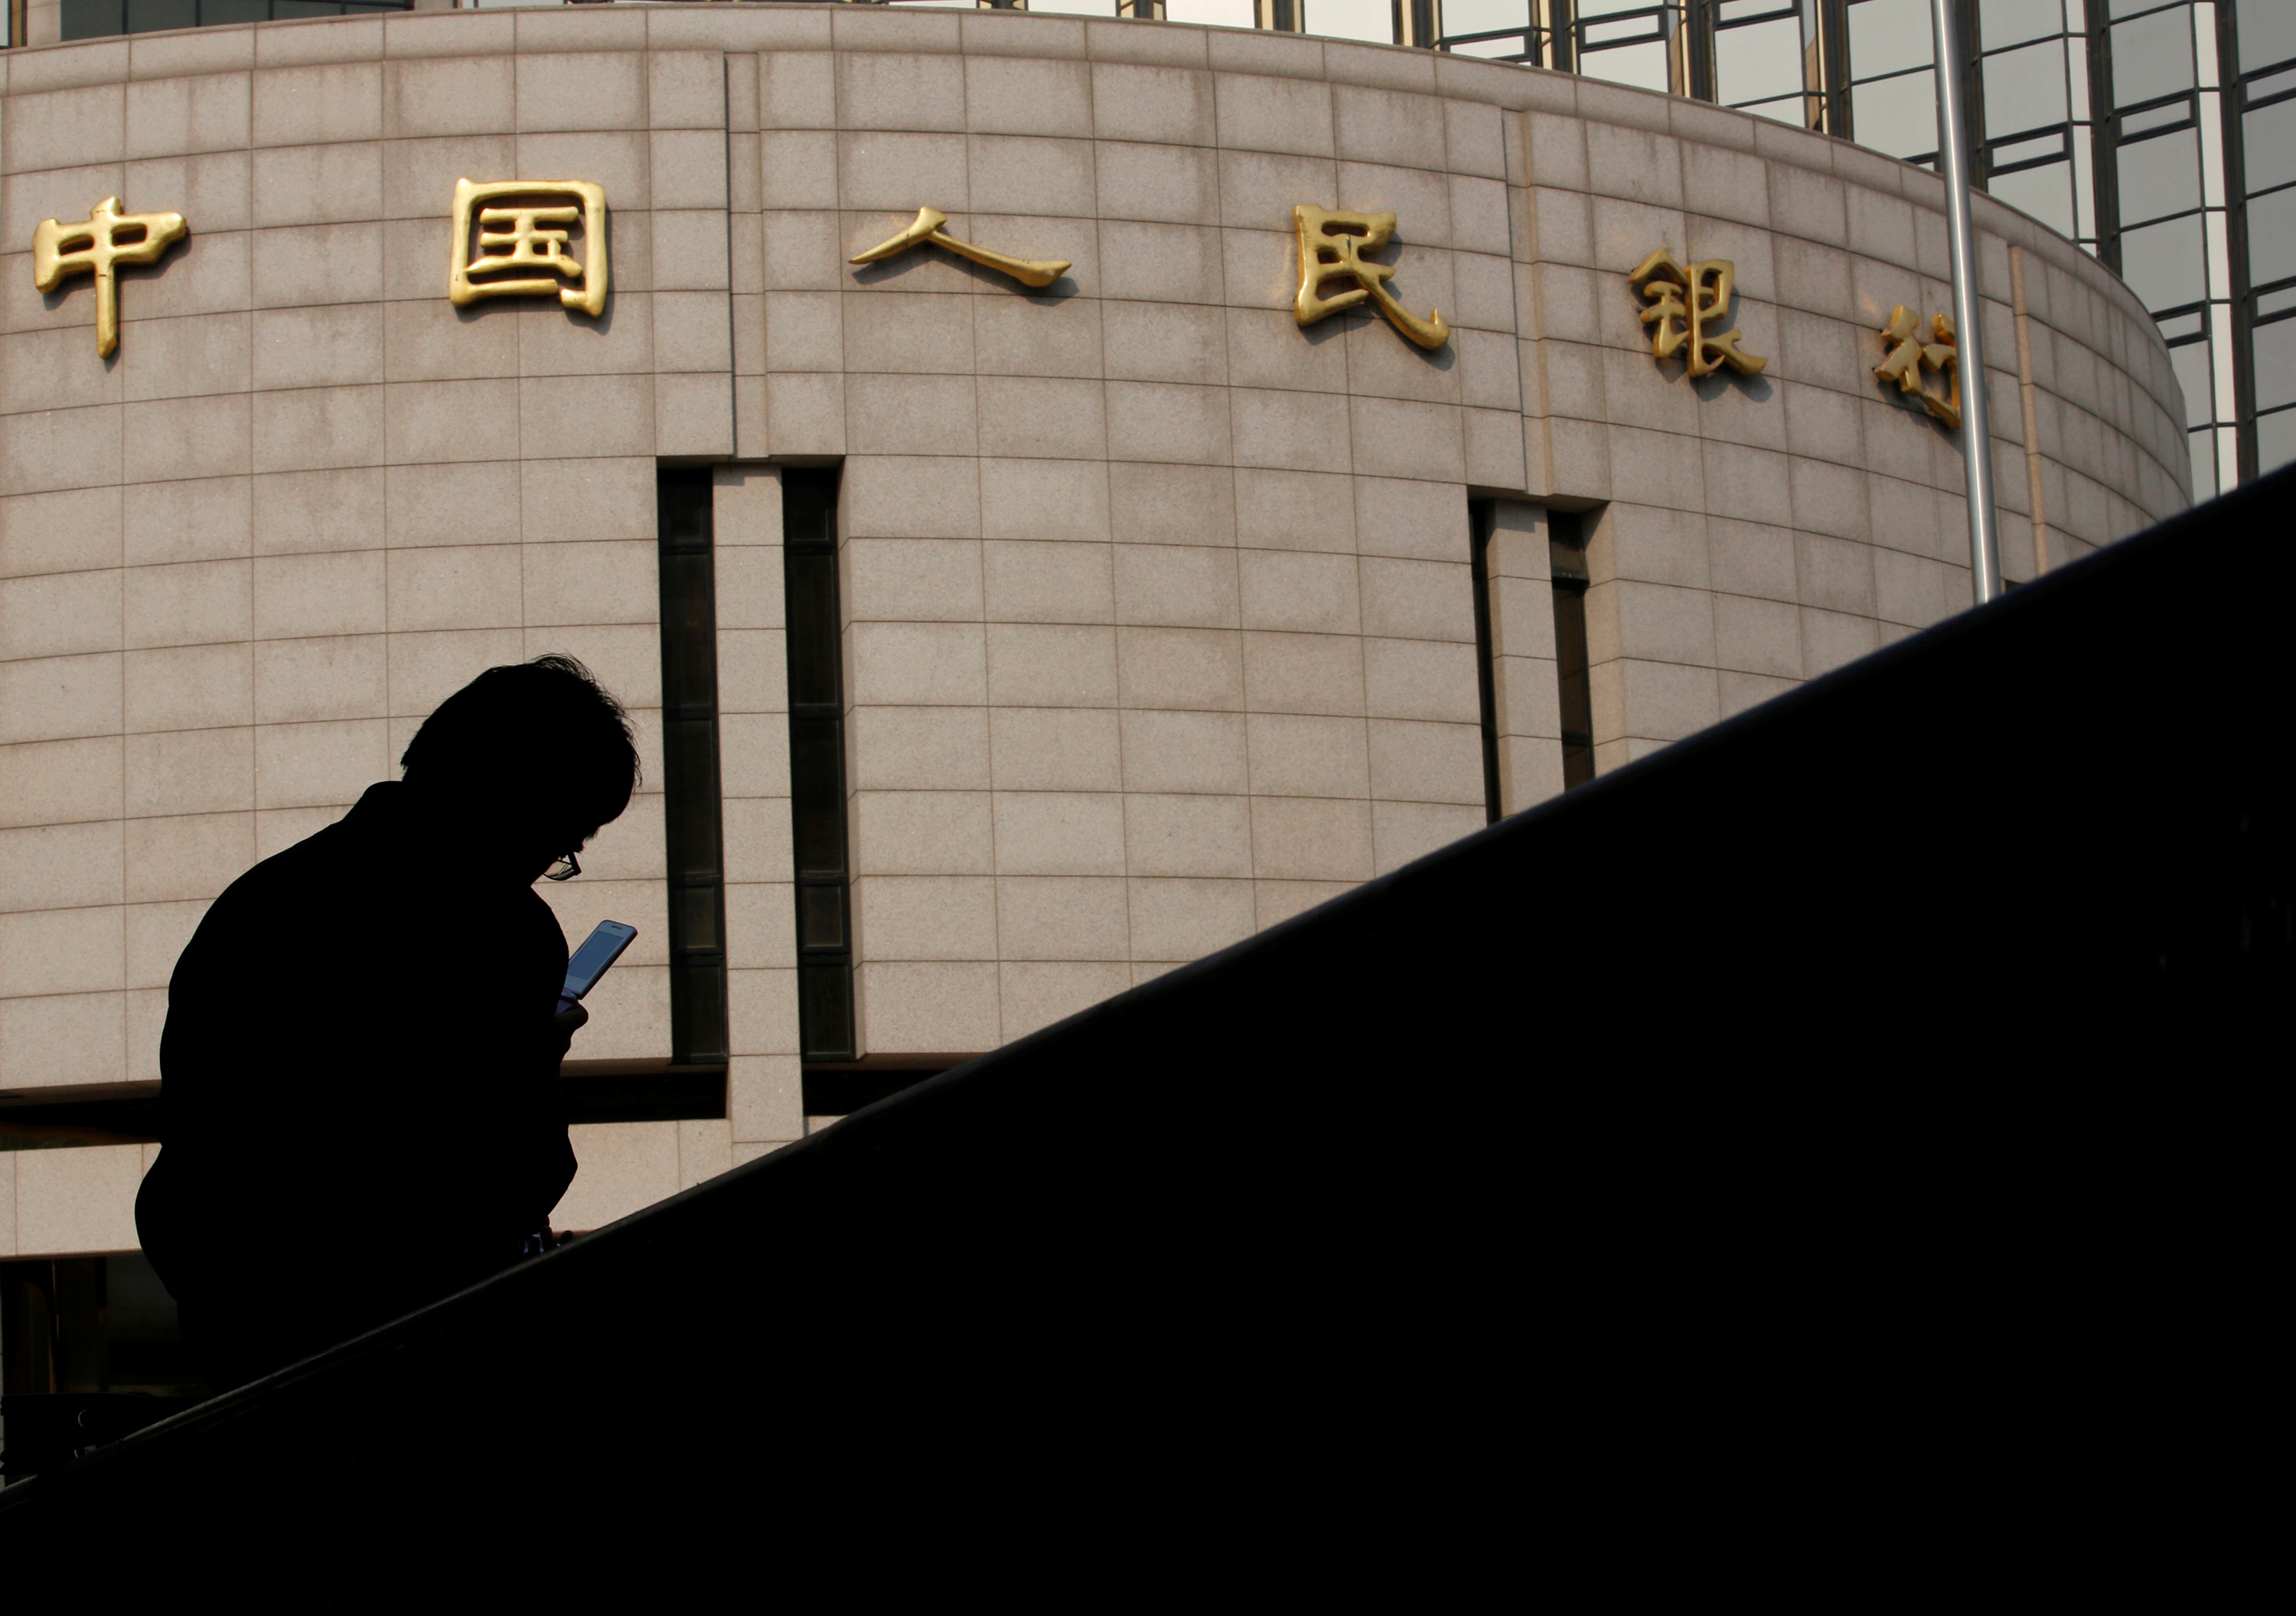 China central bank sets rules on mortgage rates after reform